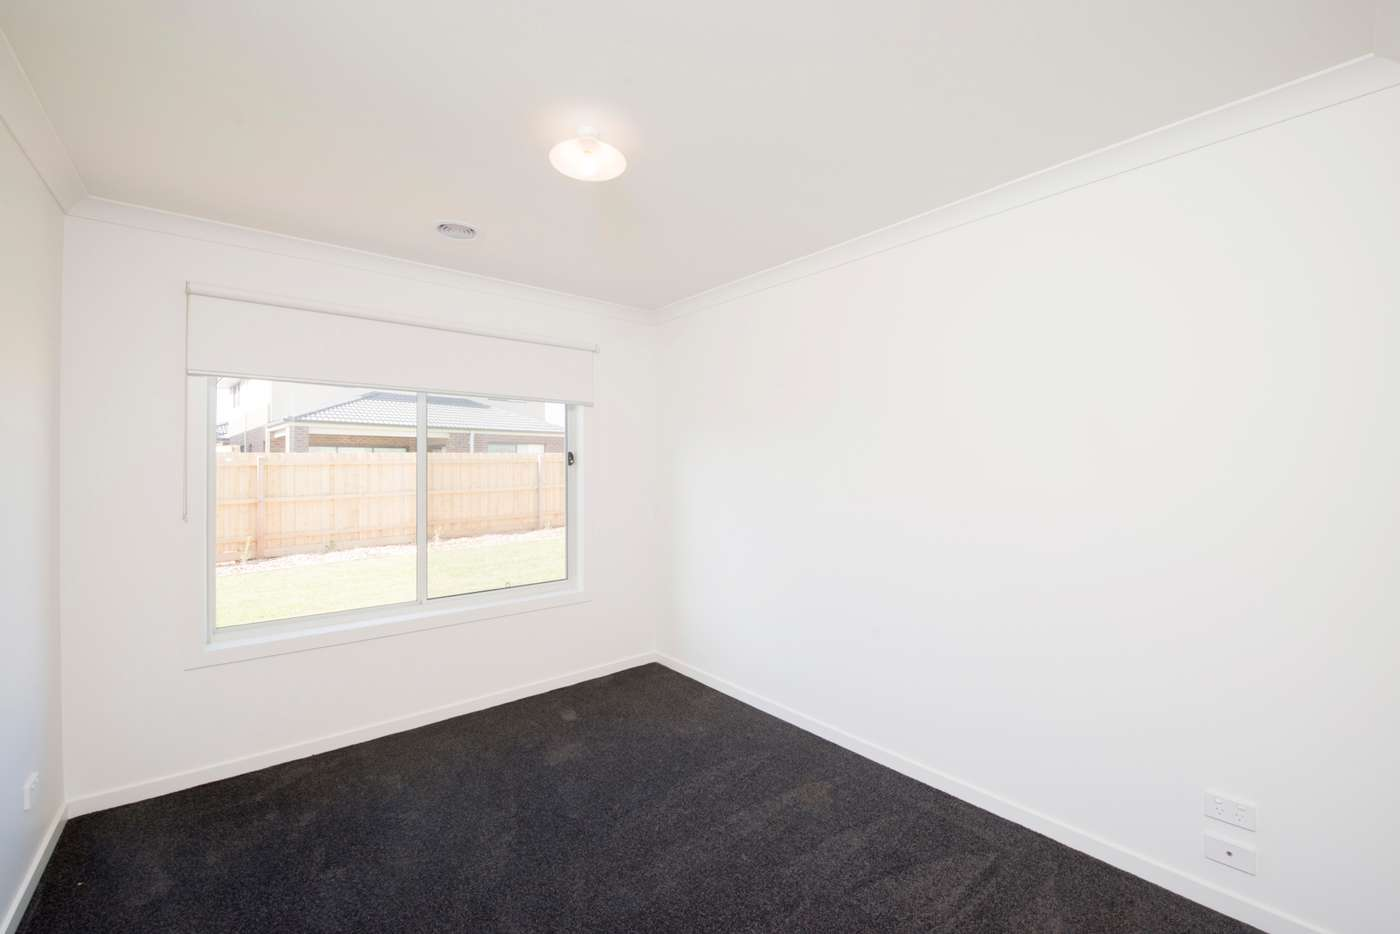 Sixth view of Homely house listing, 45 Harlem Circuit, Point Cook VIC 3030